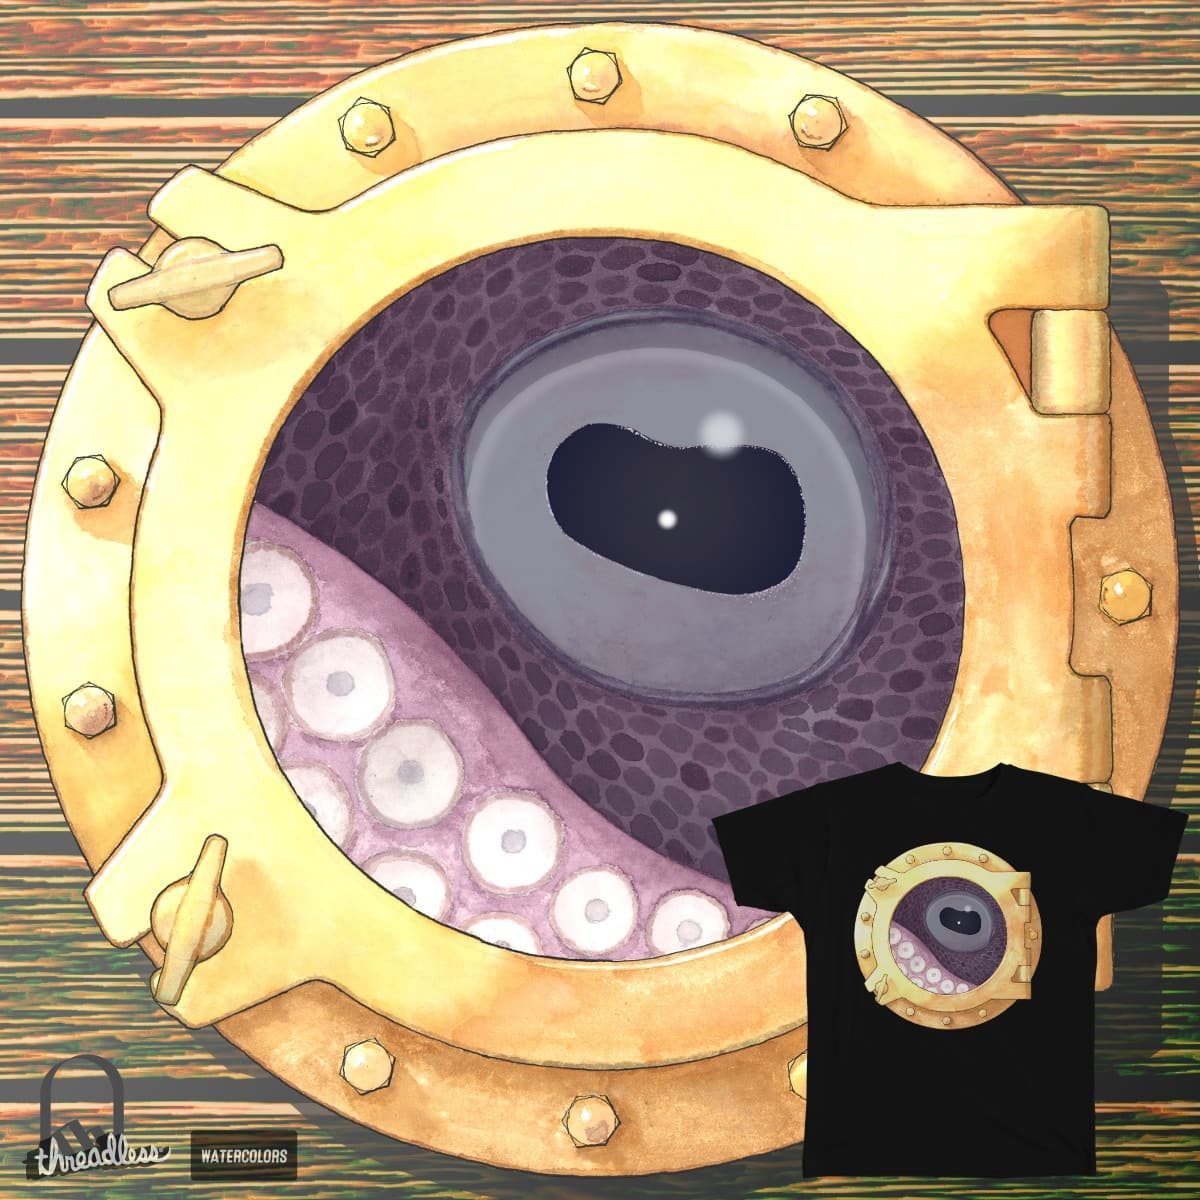 Looking through the Porthole by Sengkelat on Threadless